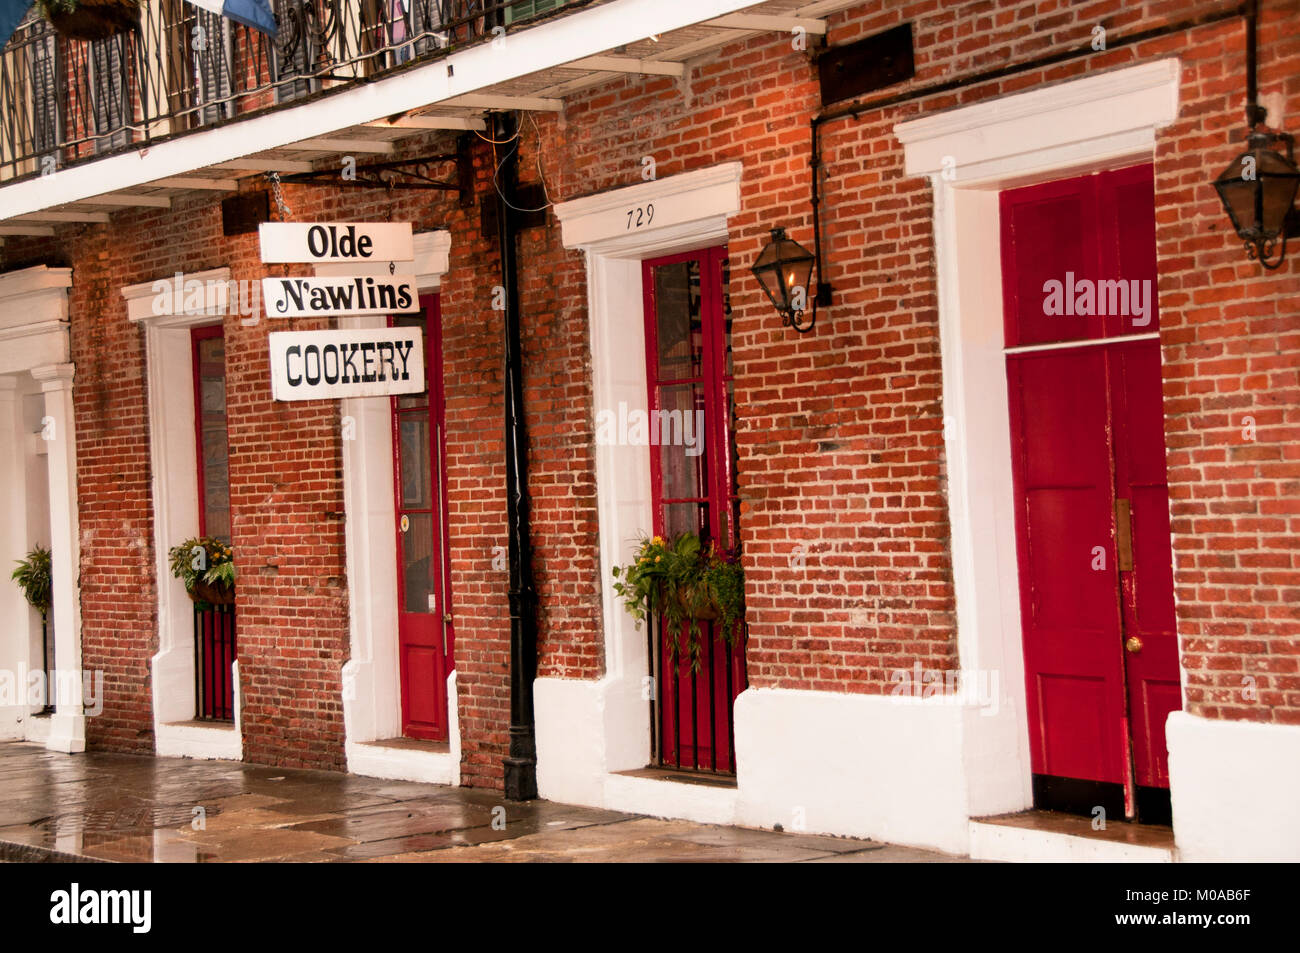 Old N'awlins Cookery exterior sign - Stock Image